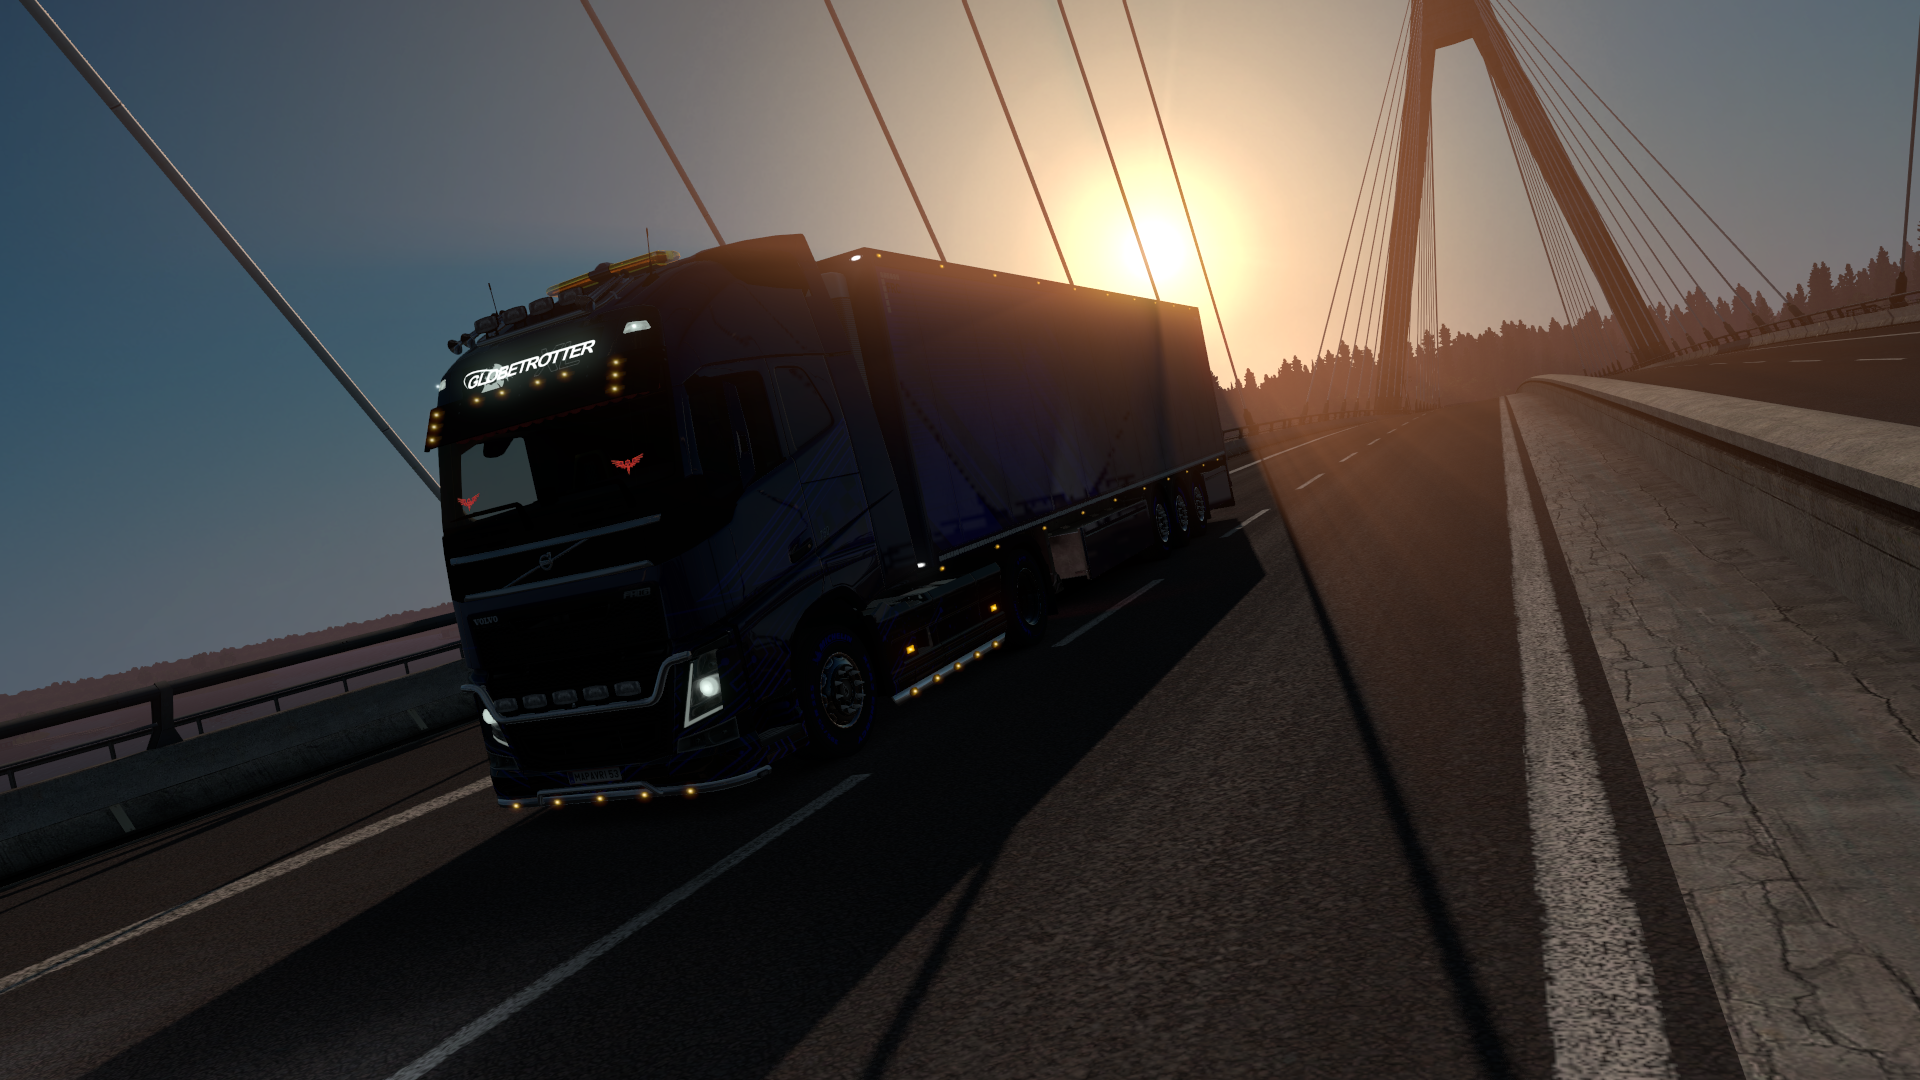 ets2_20190723_222315_00.png